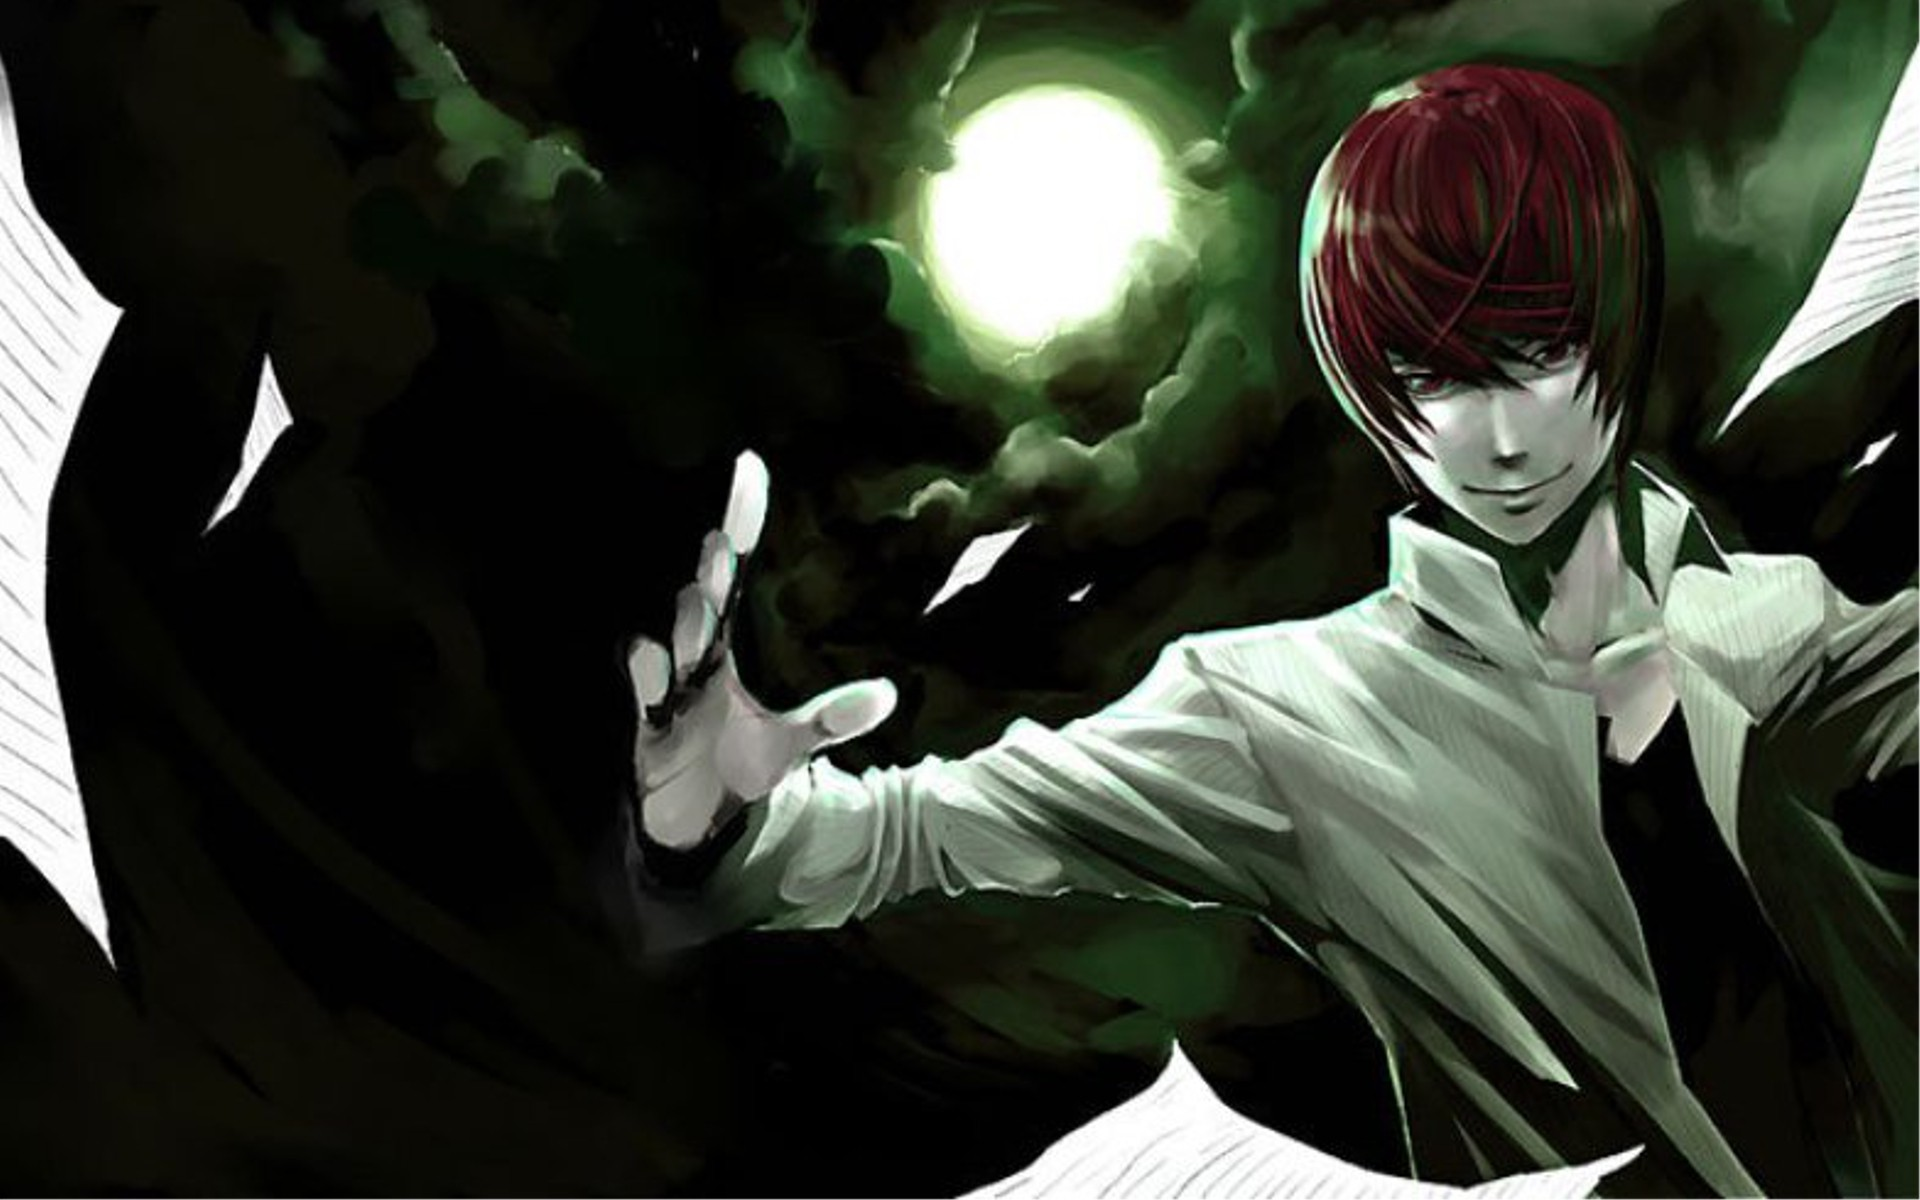 Digital Headphone Wallpaper Girl Death Note Wallpapers High Quality Download Free